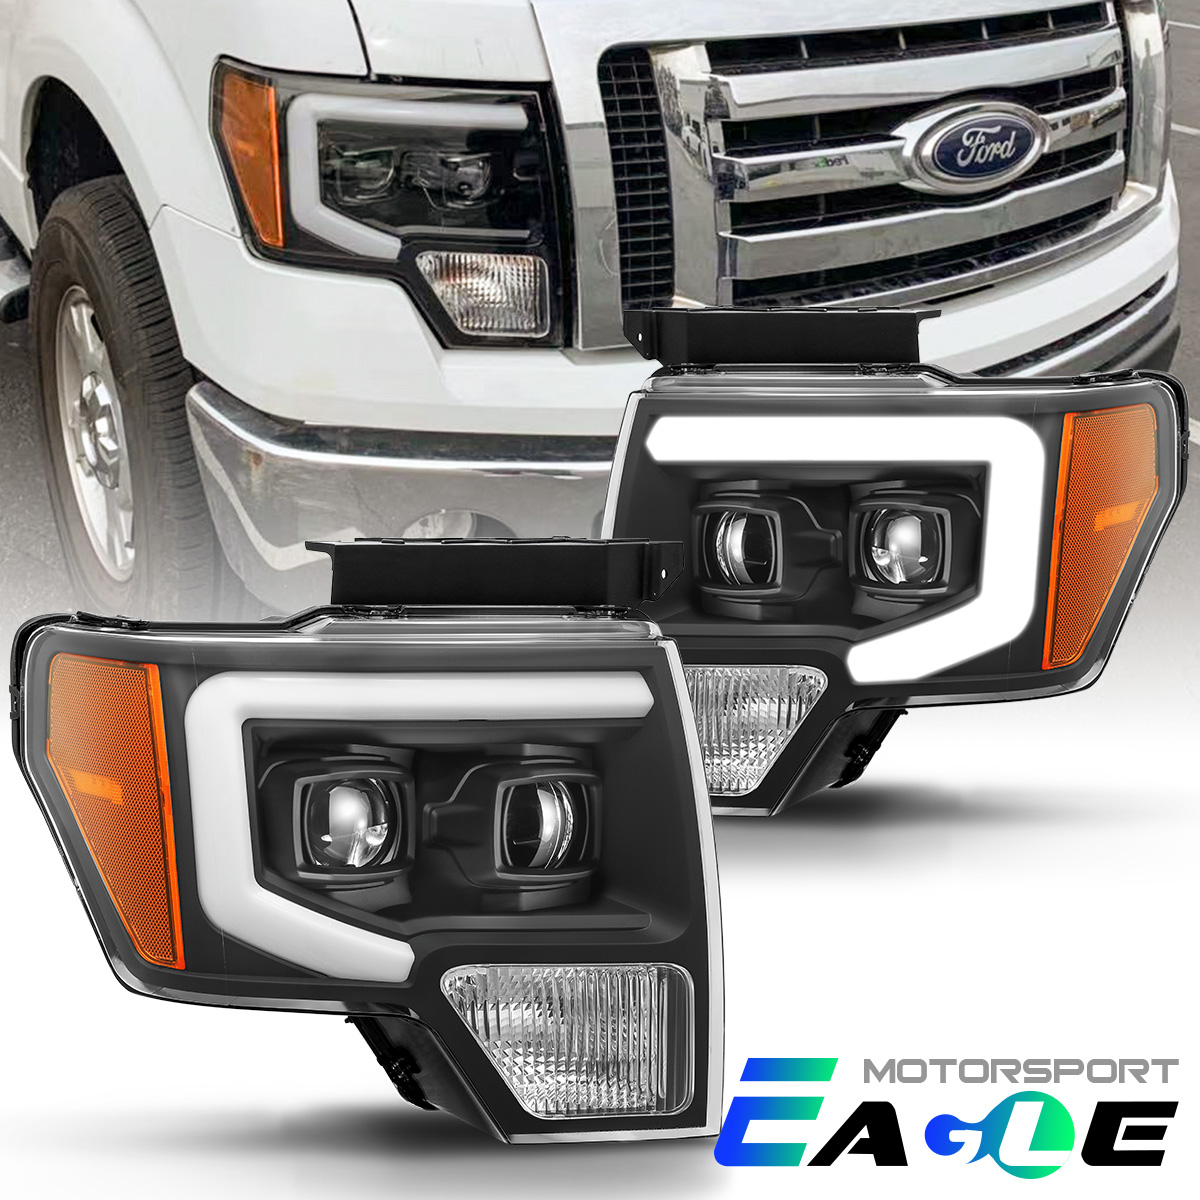 Details about [LED Tube Bar] 2009-2014 Ford F-150 Truck Black Projector  Headlights Head Lamps